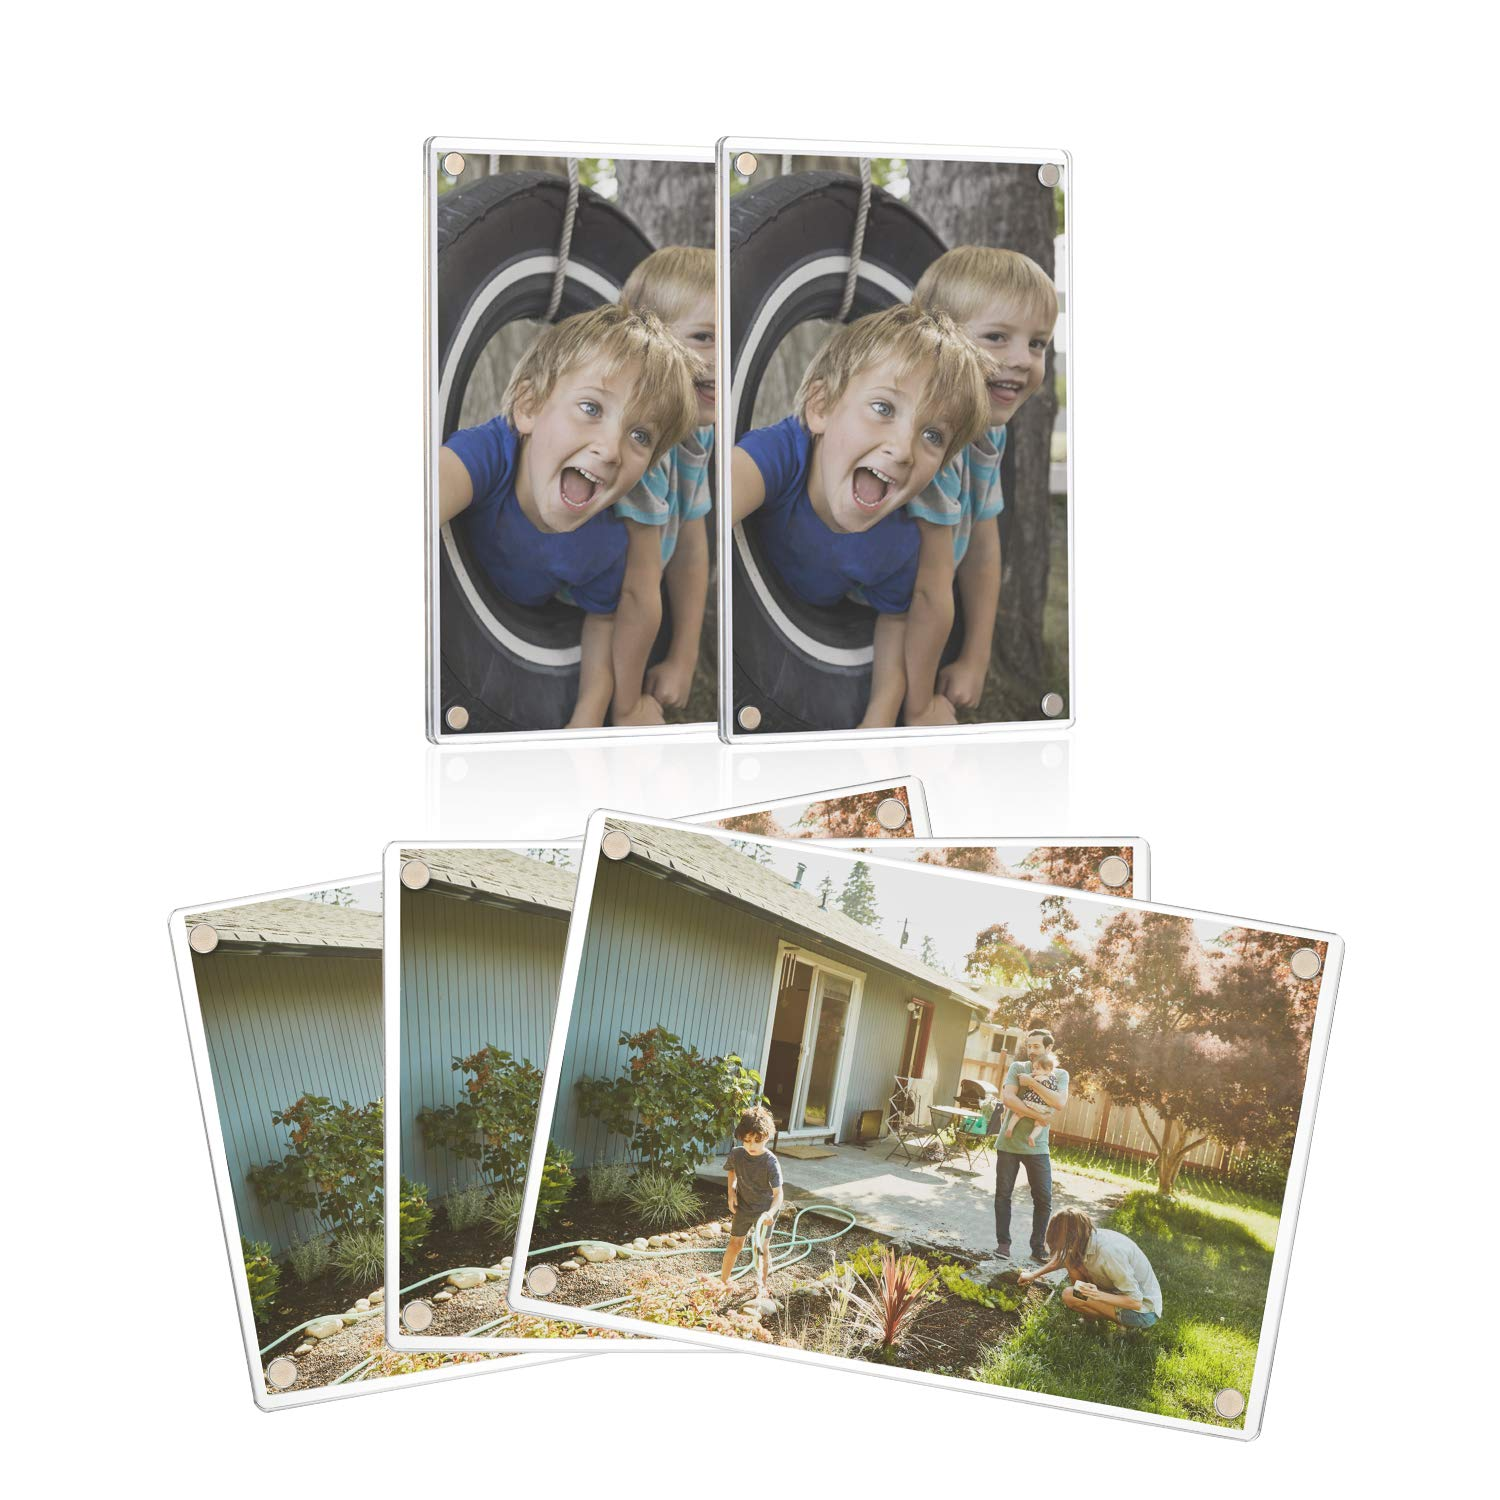 ONE WALL 4x6 Inch Acrylic Fridge Magnetic Frame, 5 PCS 2-Sided Photo Refrigerator Magnets Picture Frame for Photos, Tickets, Business Cards, Notes, Memos, Paintings Display